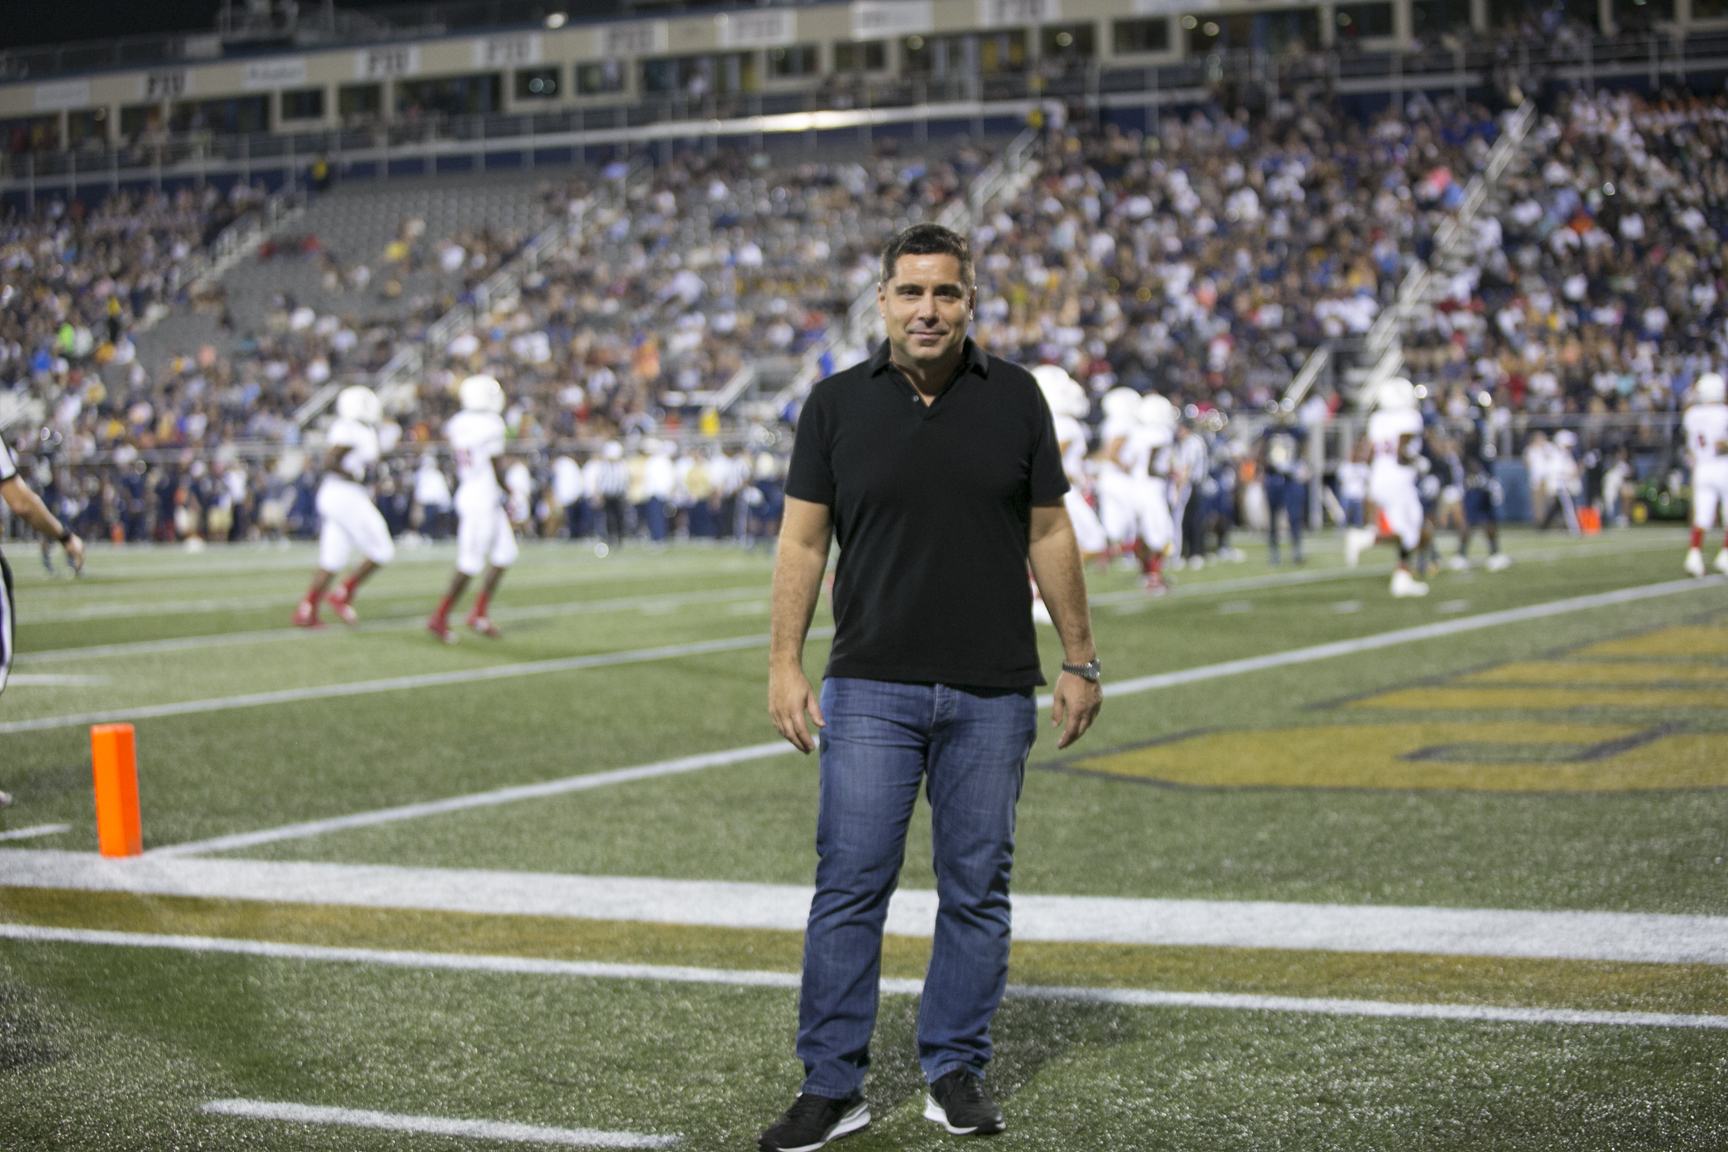 Riccardo Silva at Riccardo Silva Stadium in Miami, Florida